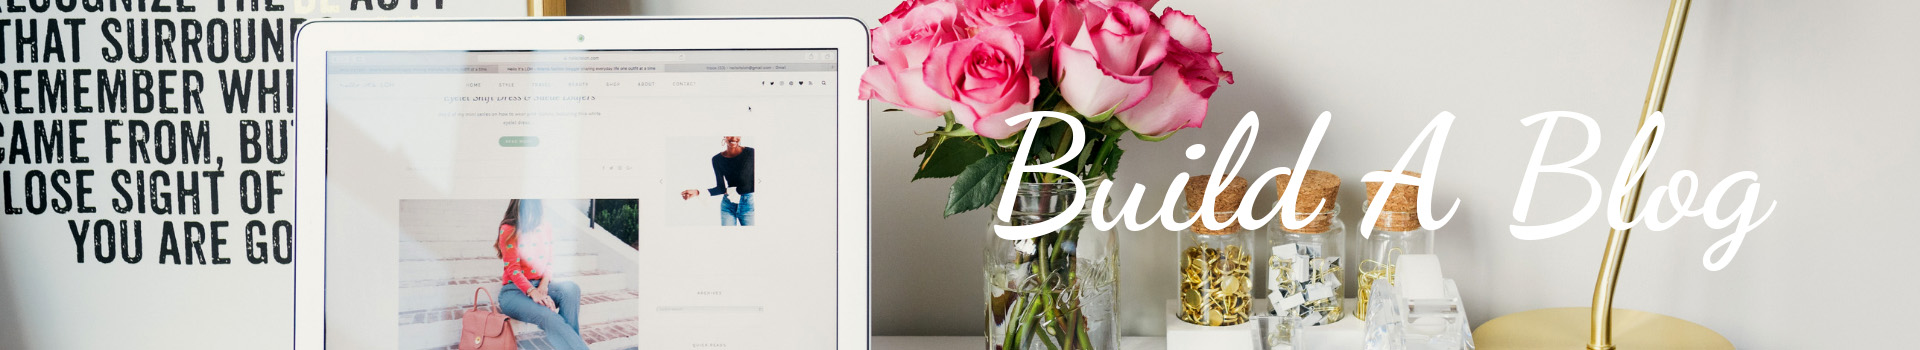 Blog header of a laptop, poster and floral arrangement on a desktop for the Build a Blog page